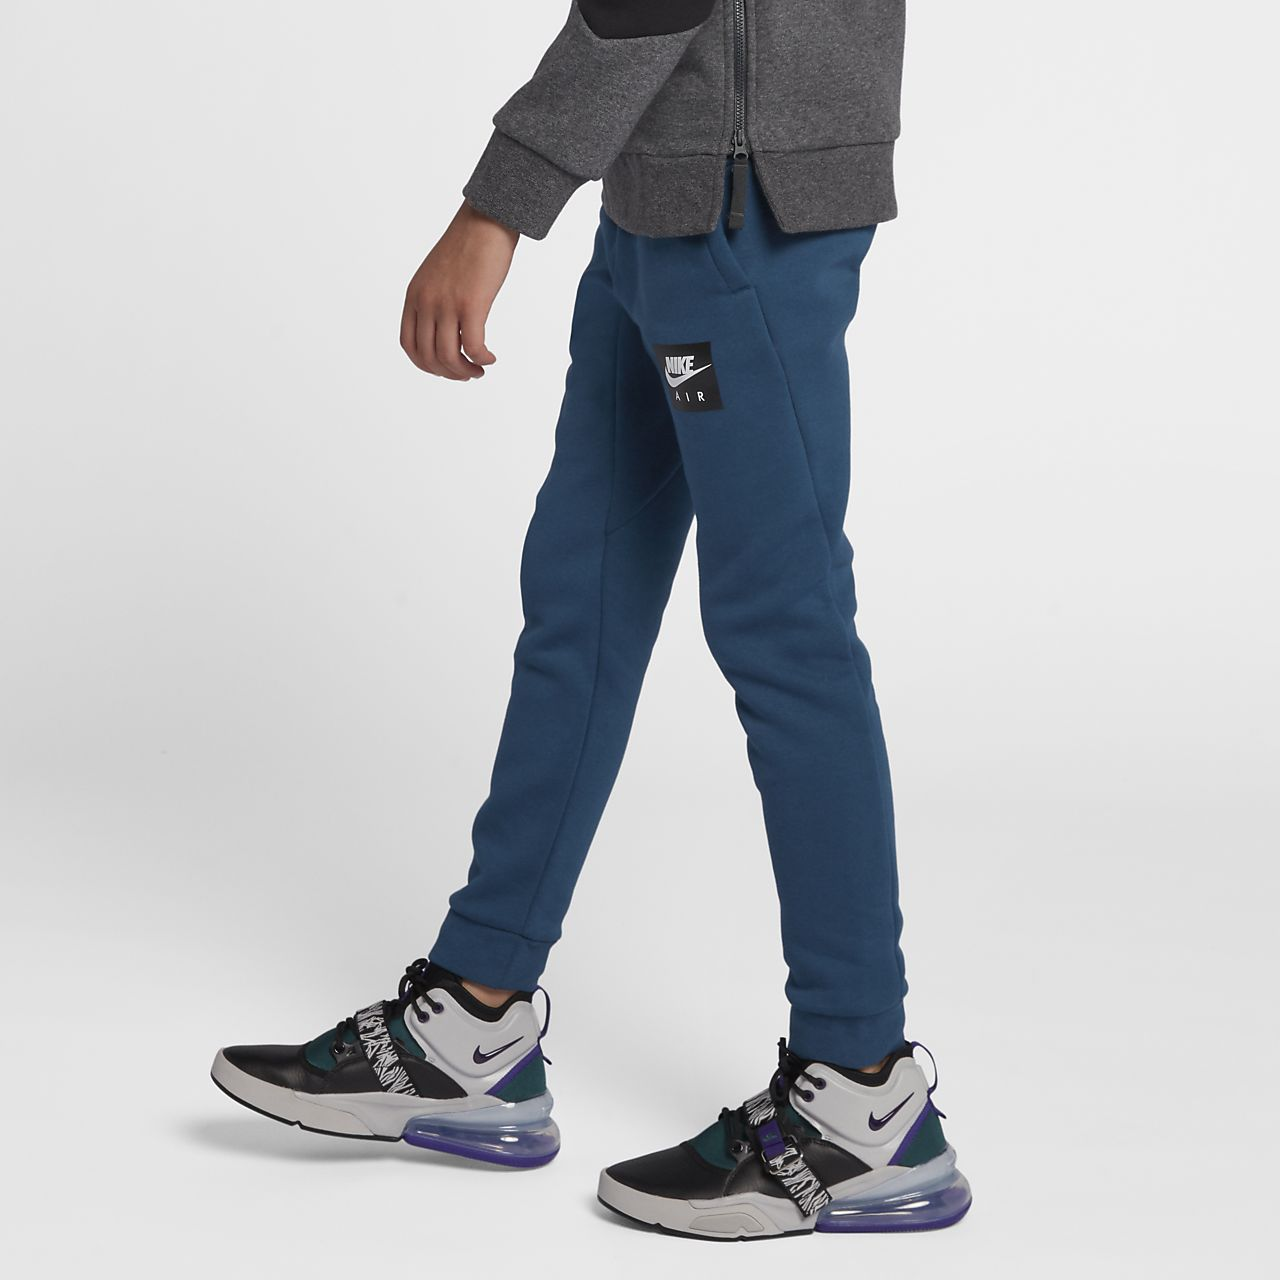 promo code 6daeb 69a04 ... Nike Air Big Kids  (Boys ) Pants